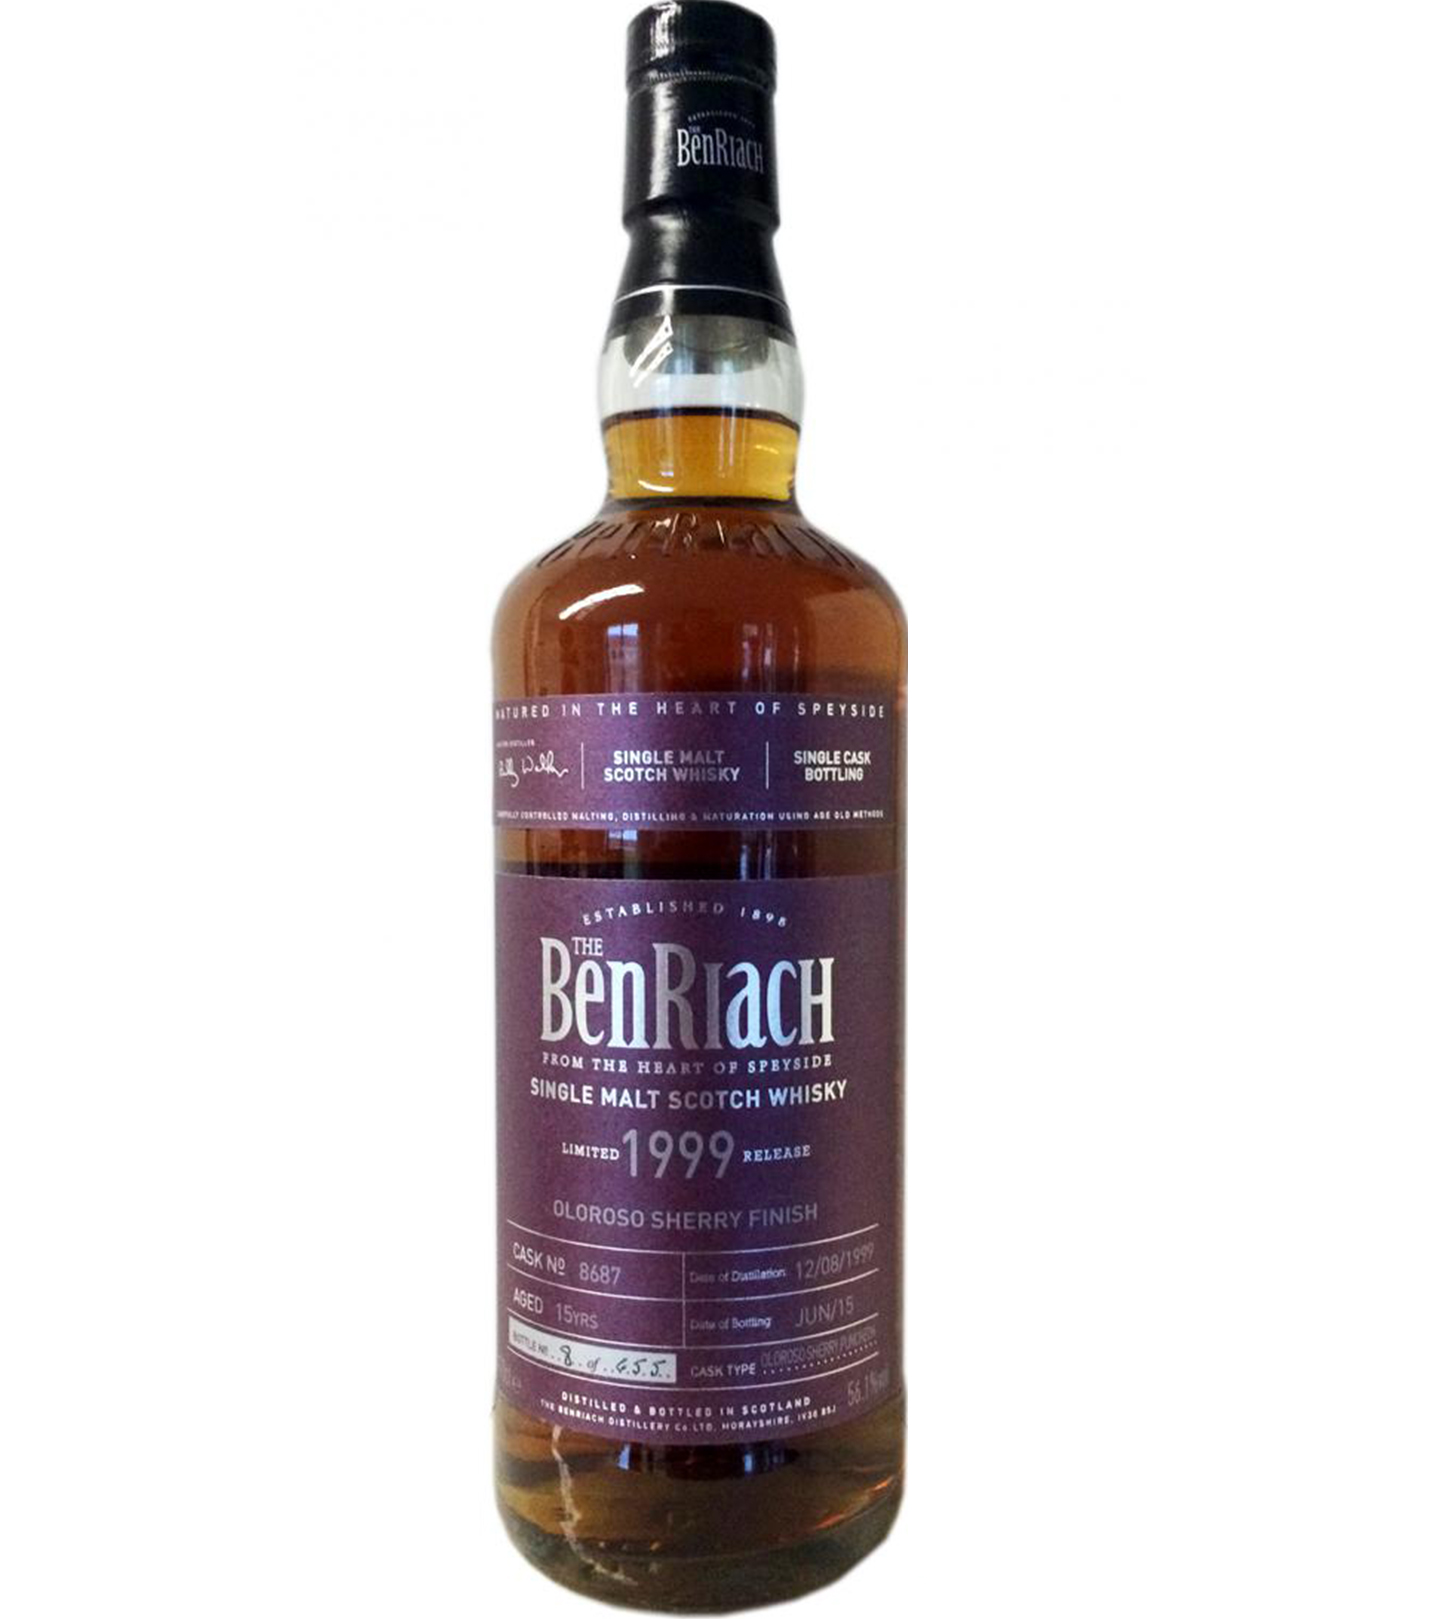 BenRiach 1999 15 years – cask #8687